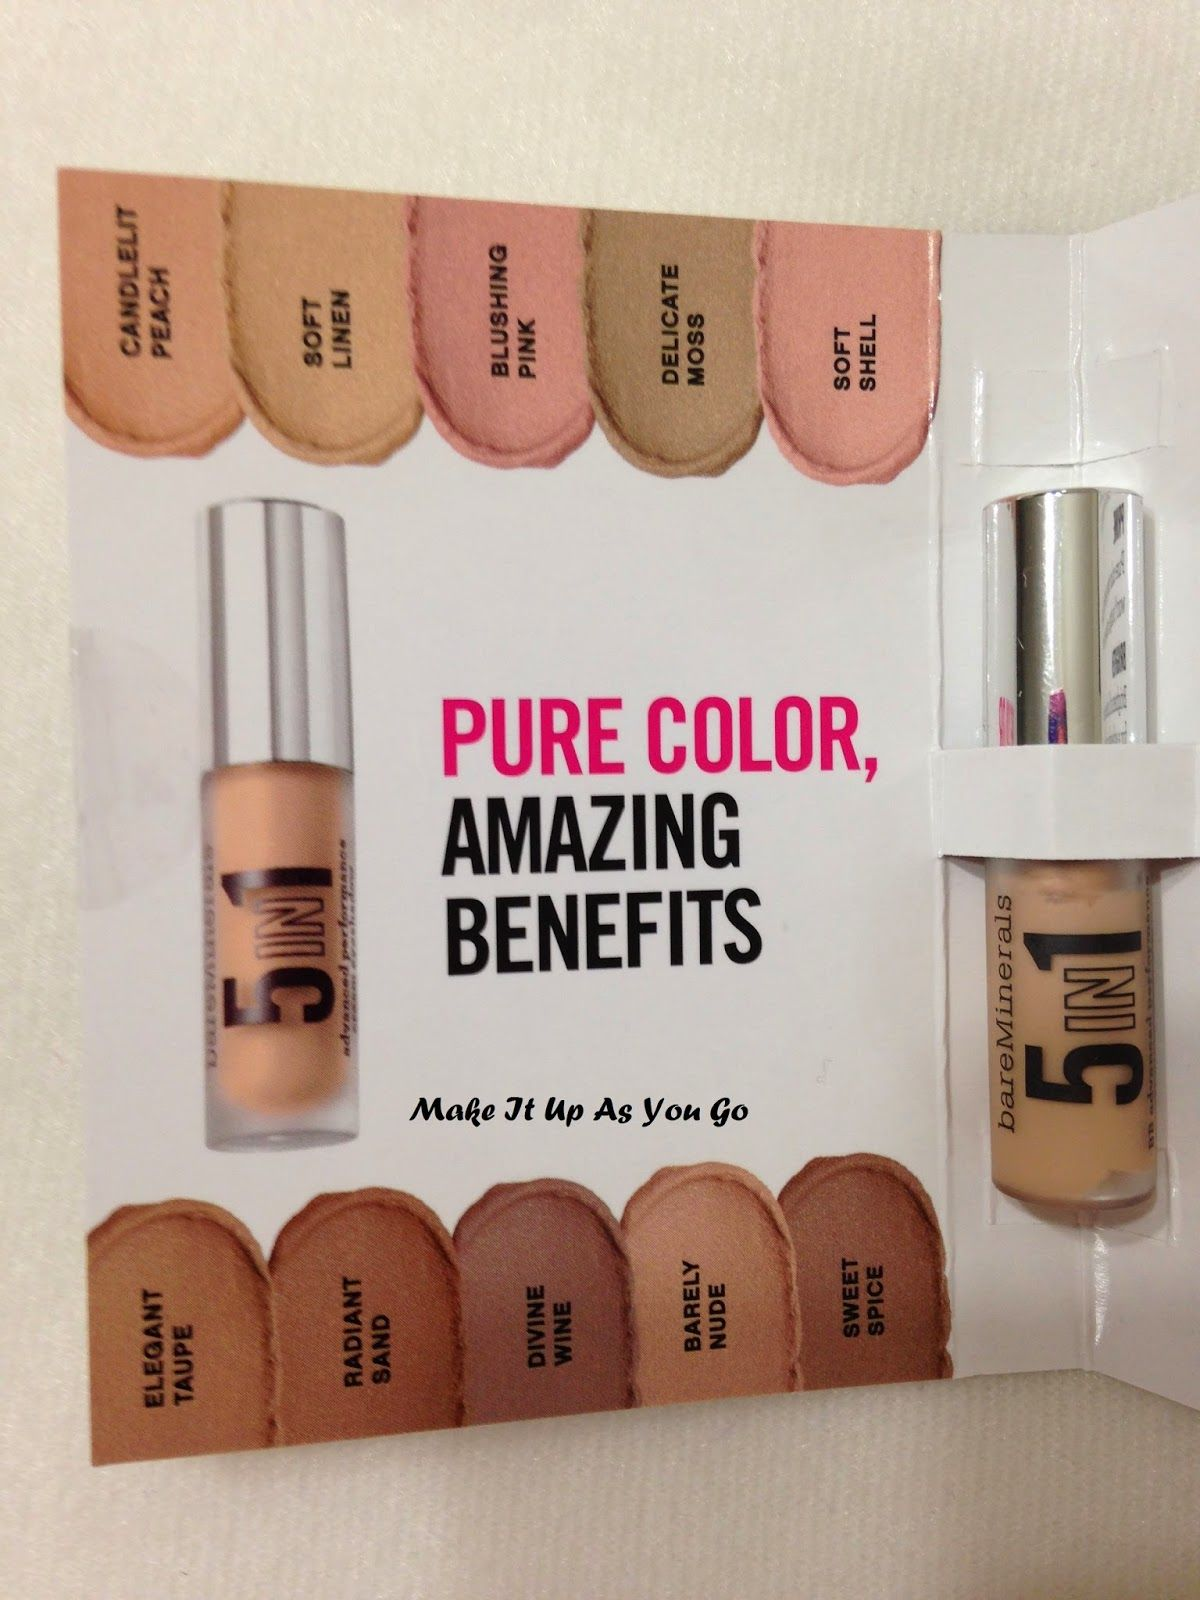 free concealer samples by mail - Google Search